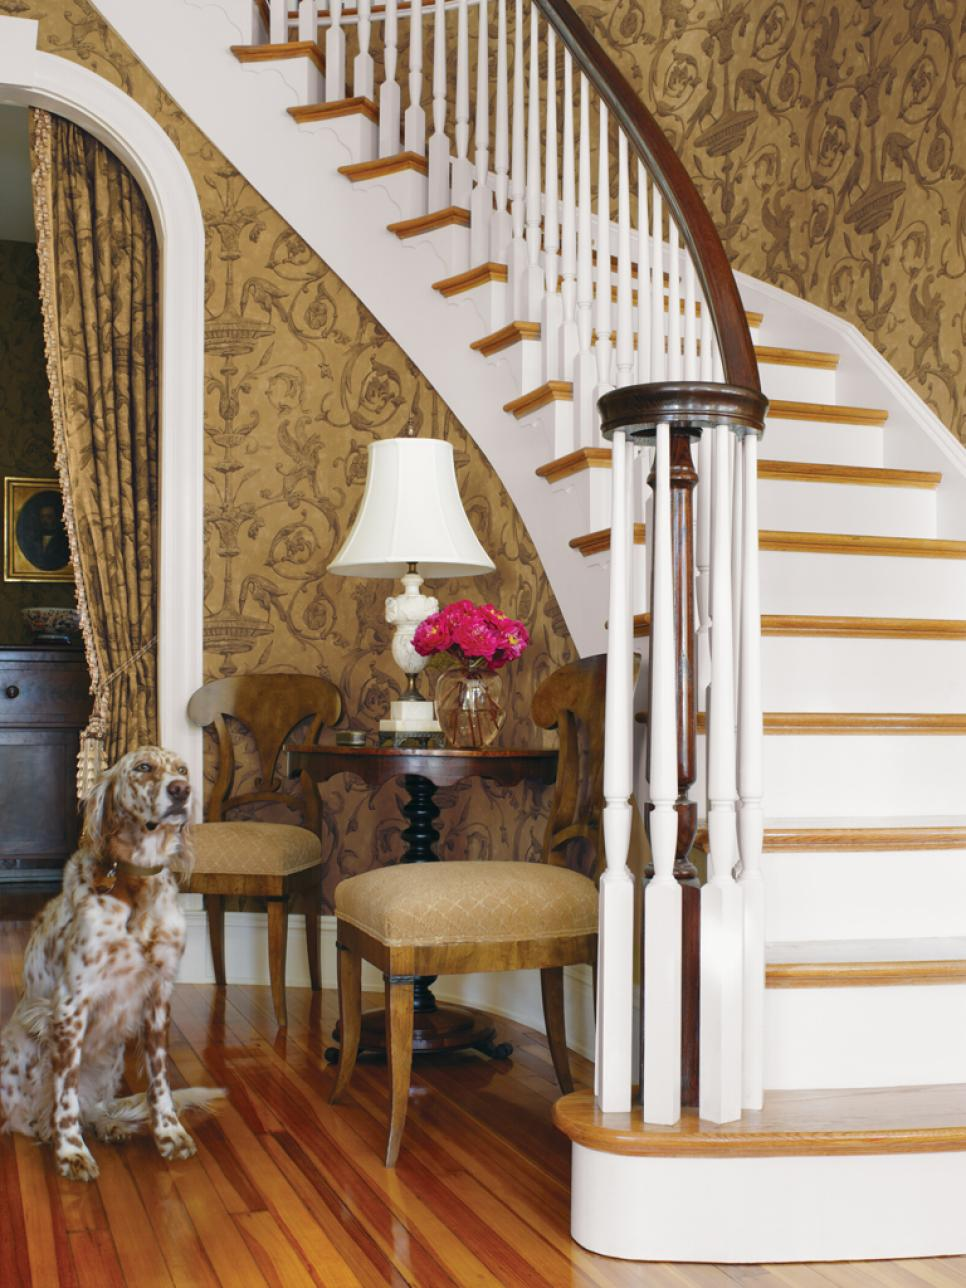 Our favorite fall decorating ideas hgtv for Foyer staircase decorating ideas